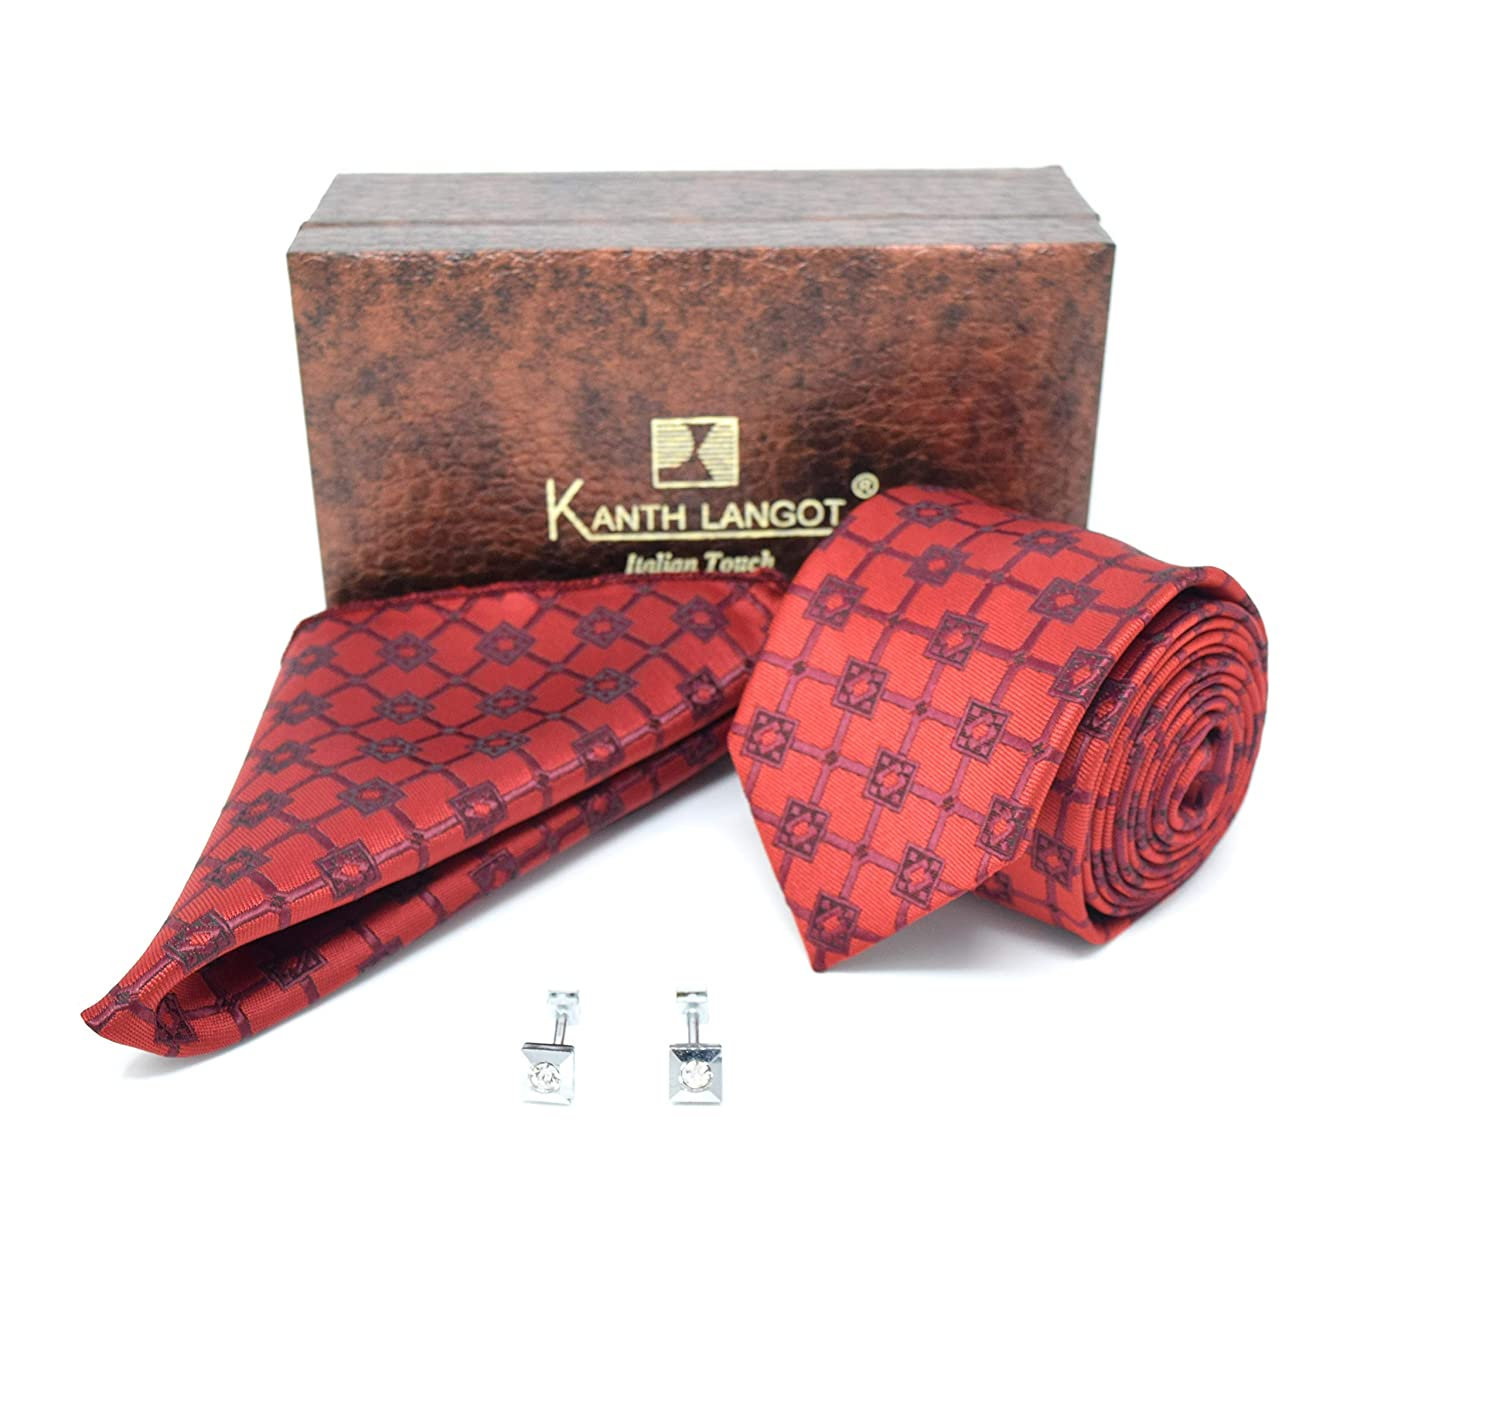 Kanthlangot Jacquard Red and Brown Tie Pocket Square And Silver Cufflinks Set